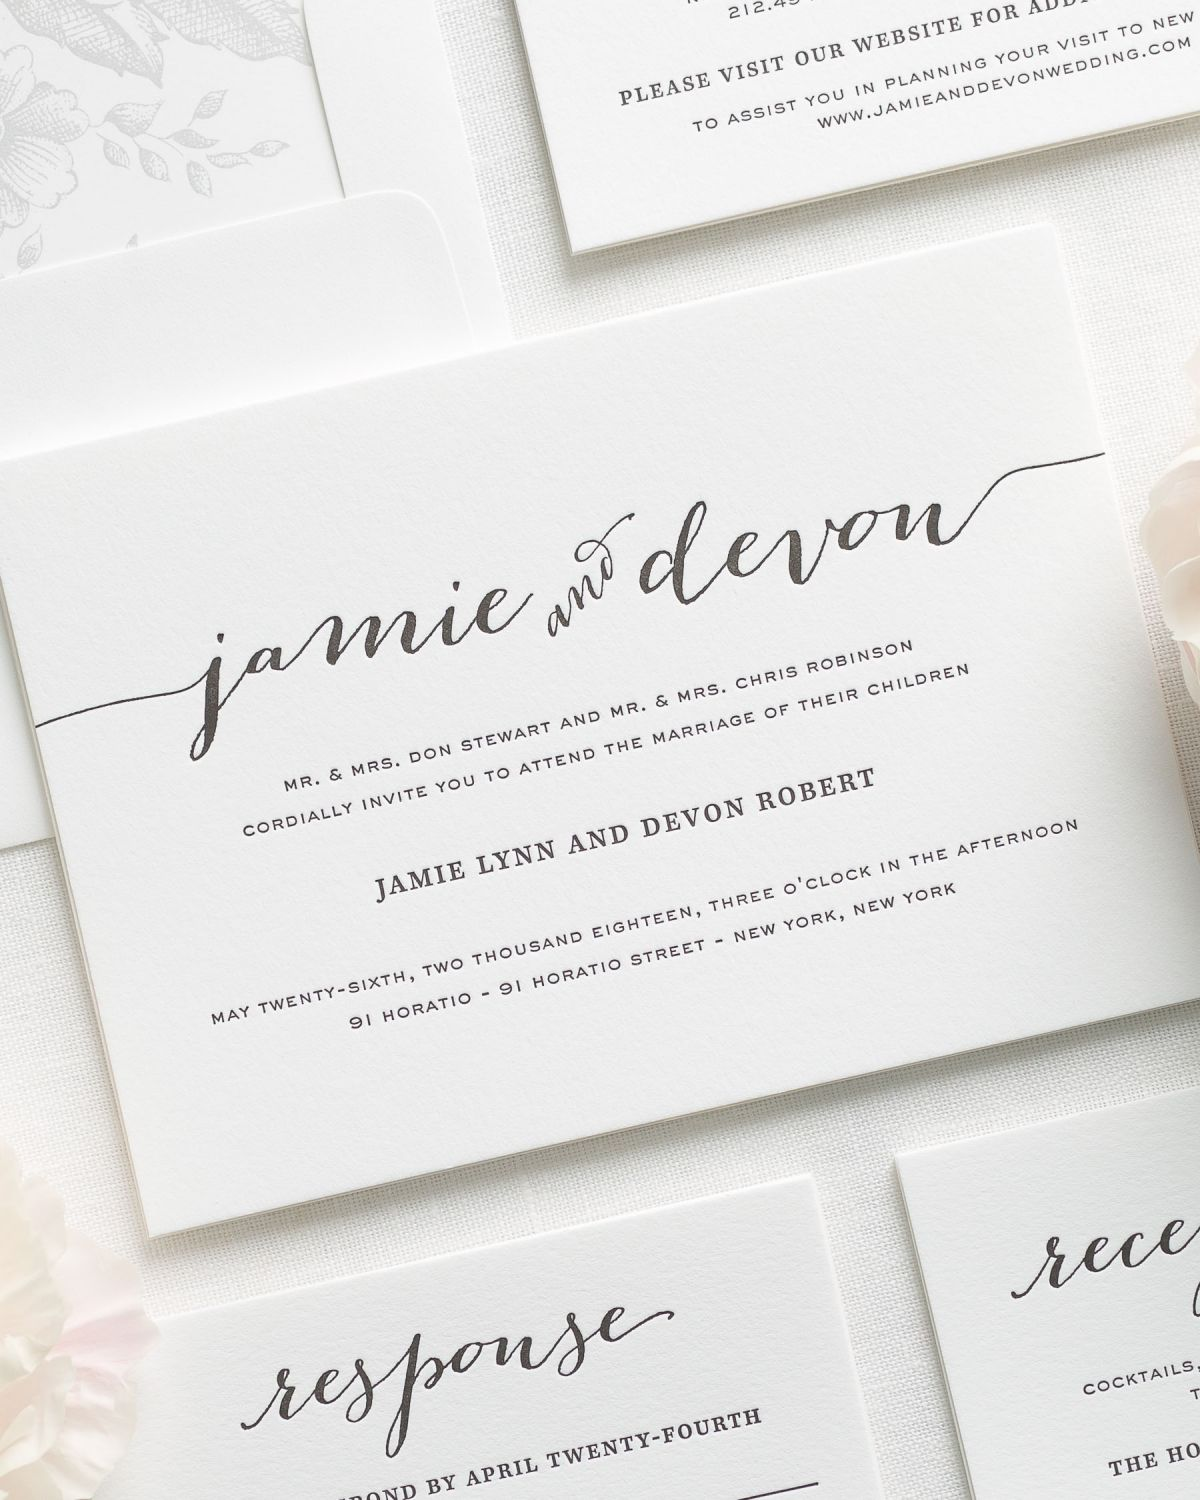 Flowing script letterpress wedding invitations letterpress wedding previous letterpress printing up close light gray letterpress wedding invitations solutioingenieria Choice Image